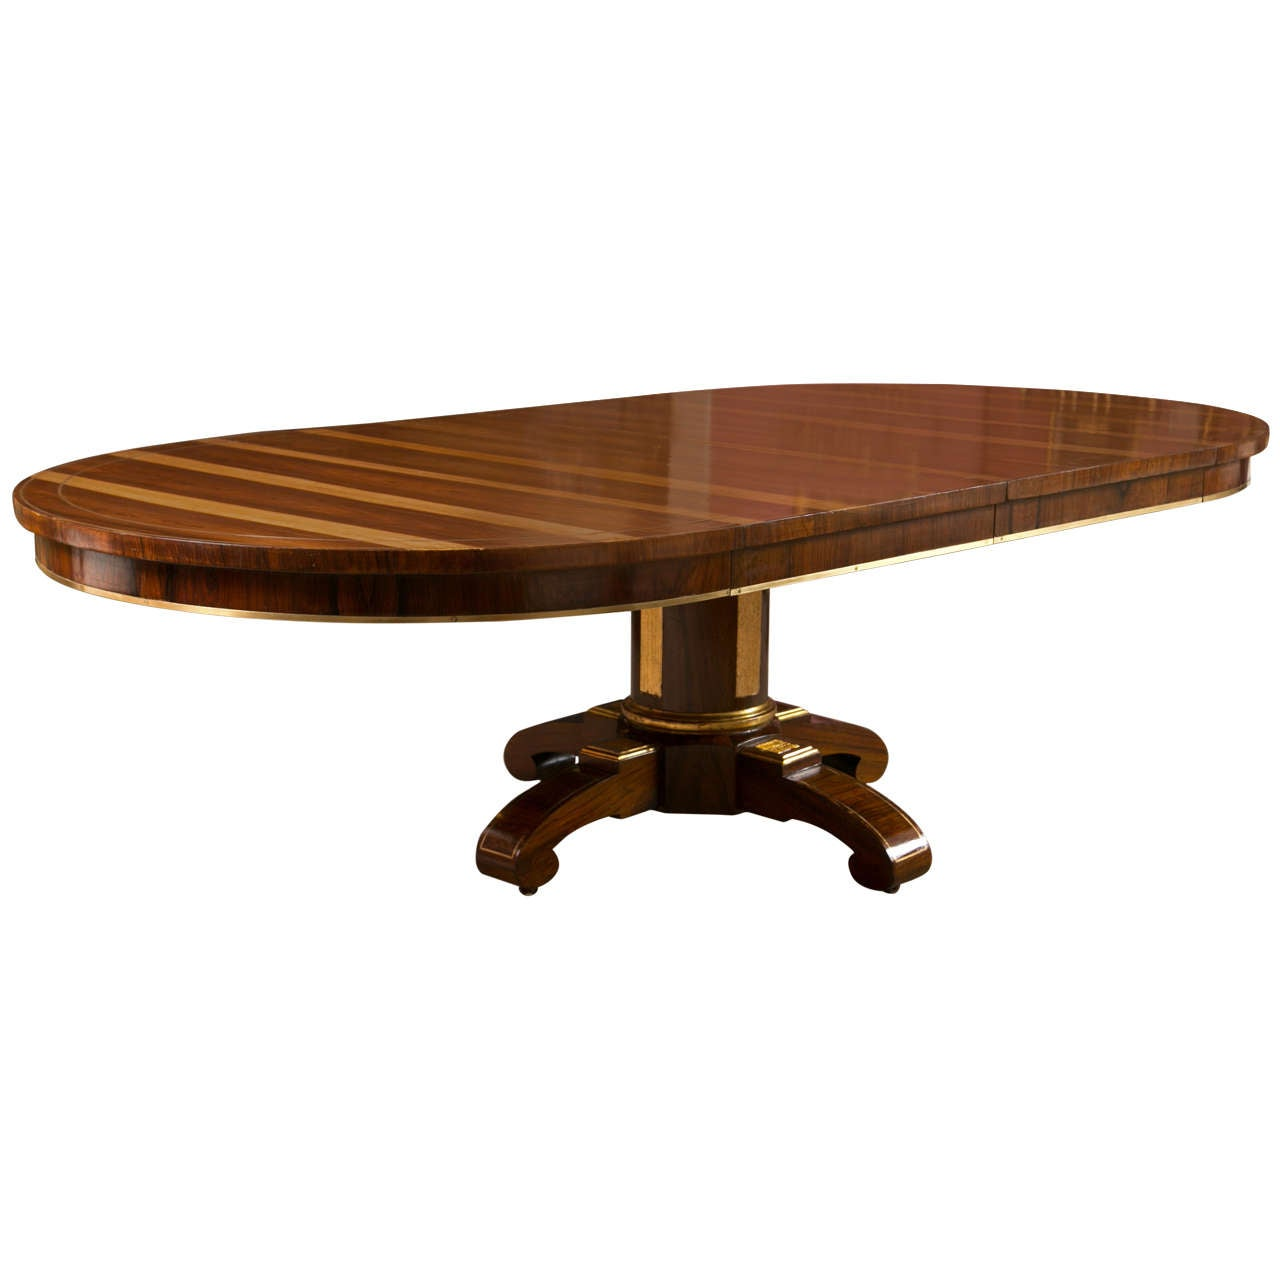 Dining Table Designs 19th C Rosewood Russian Style Dining Table Gilt Wooden Designs Pedestal Base